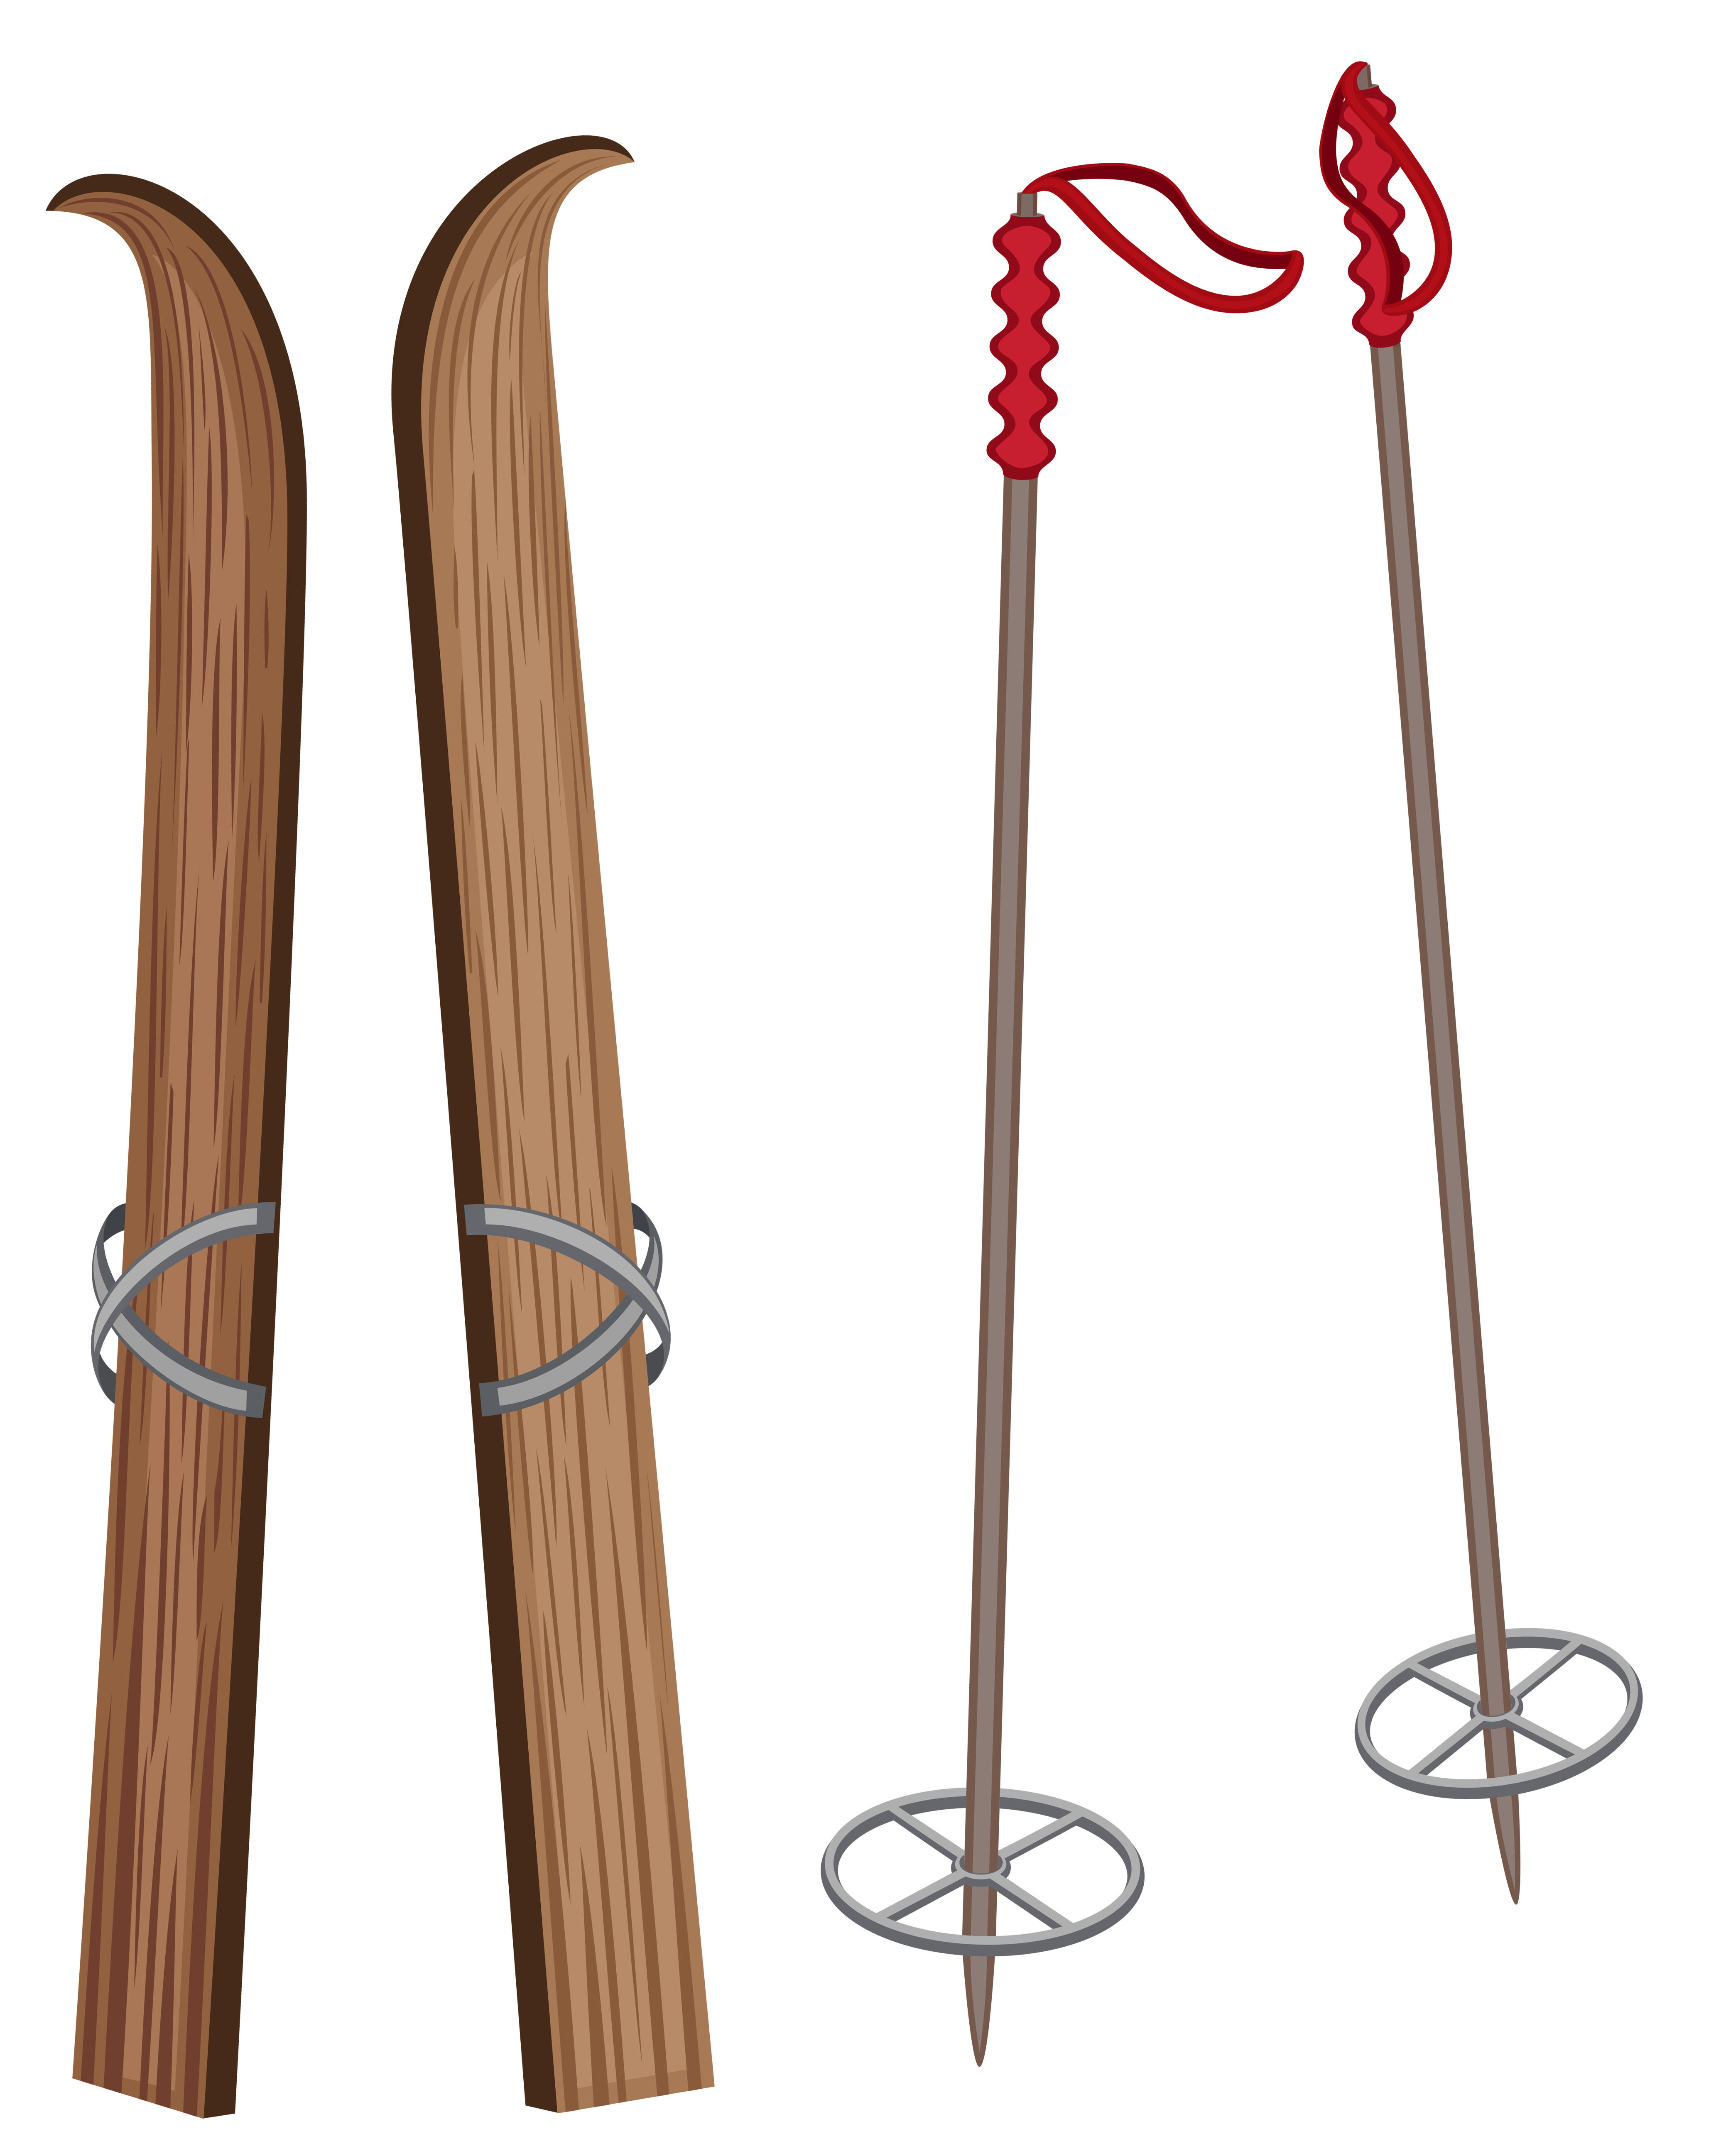 Skiing clipart transparent background. Old wooden ski png